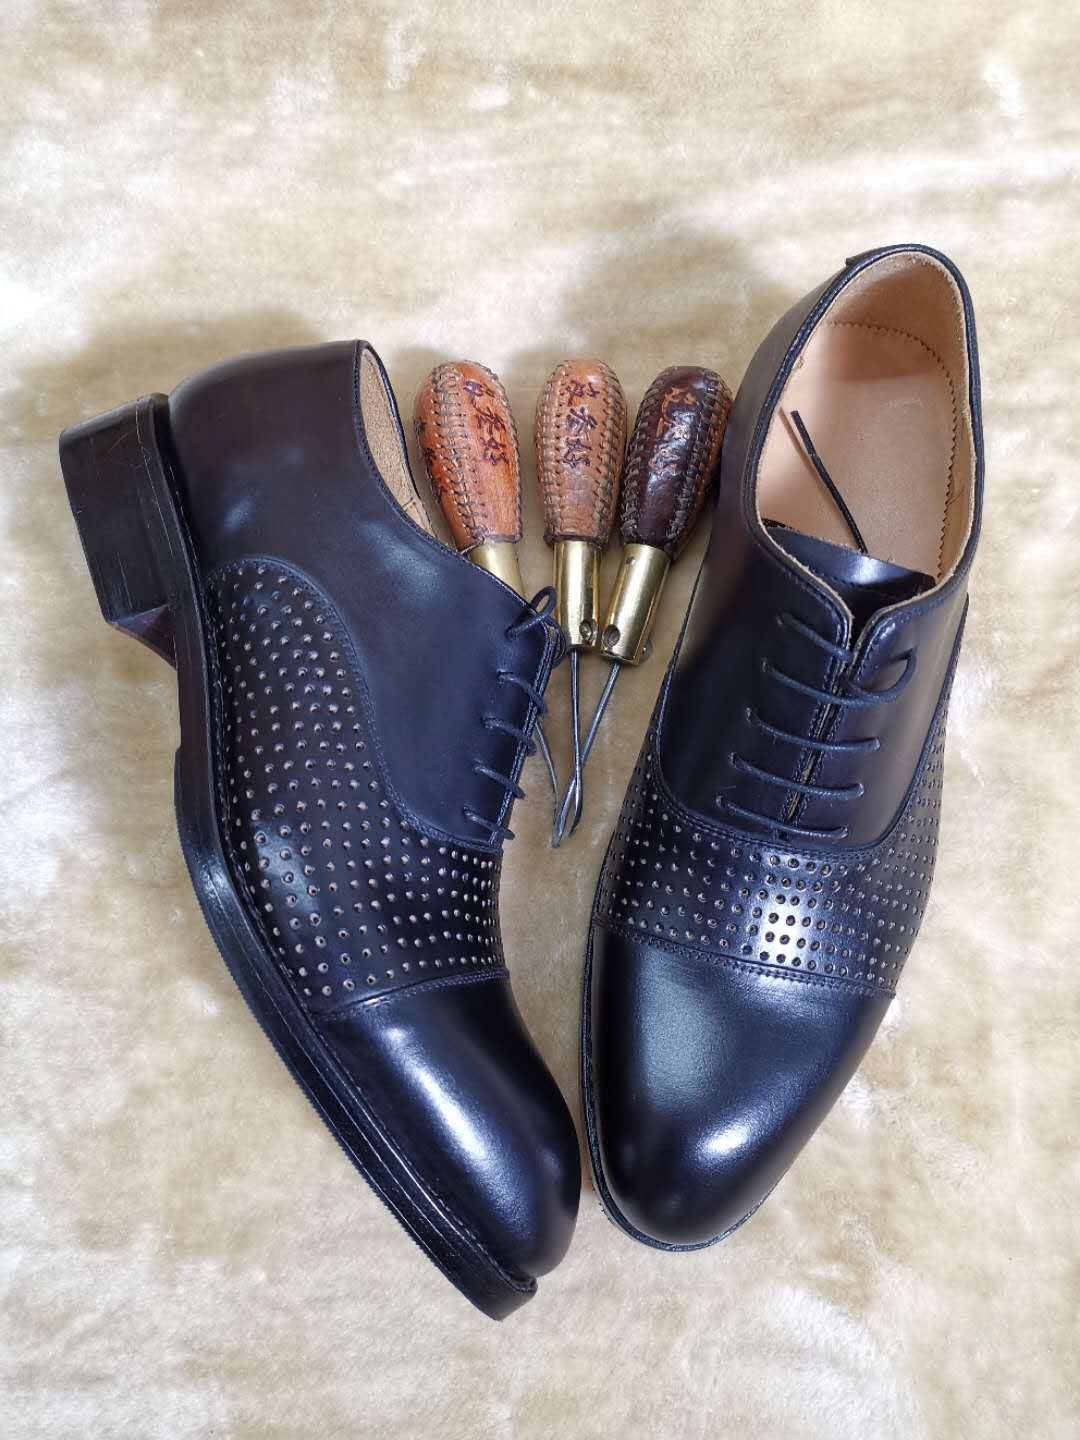 Summer punching leather shoes, Oxford Shoes, formal shoes, Goodyear craft leather soles, leather shoes, handmade shoes